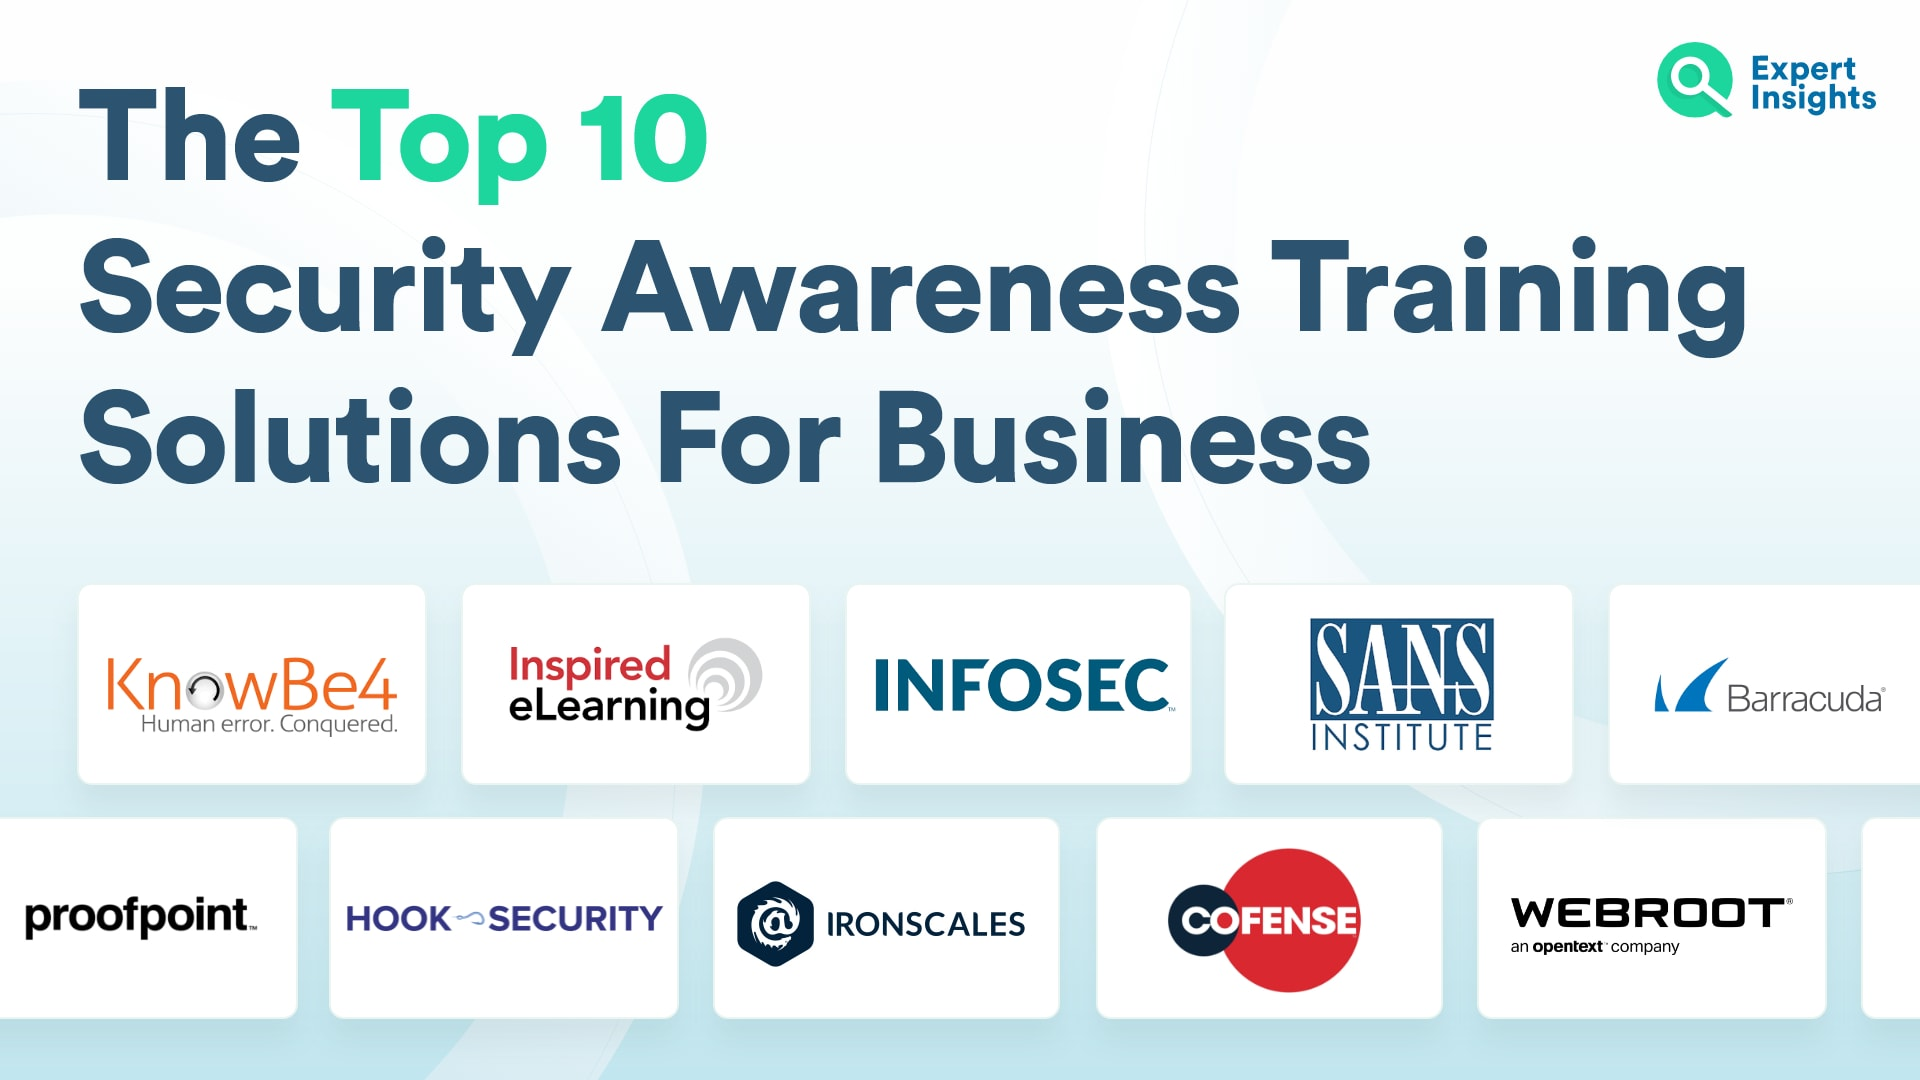 Top Security Awareness Training Solutions For Business - Expert Insights